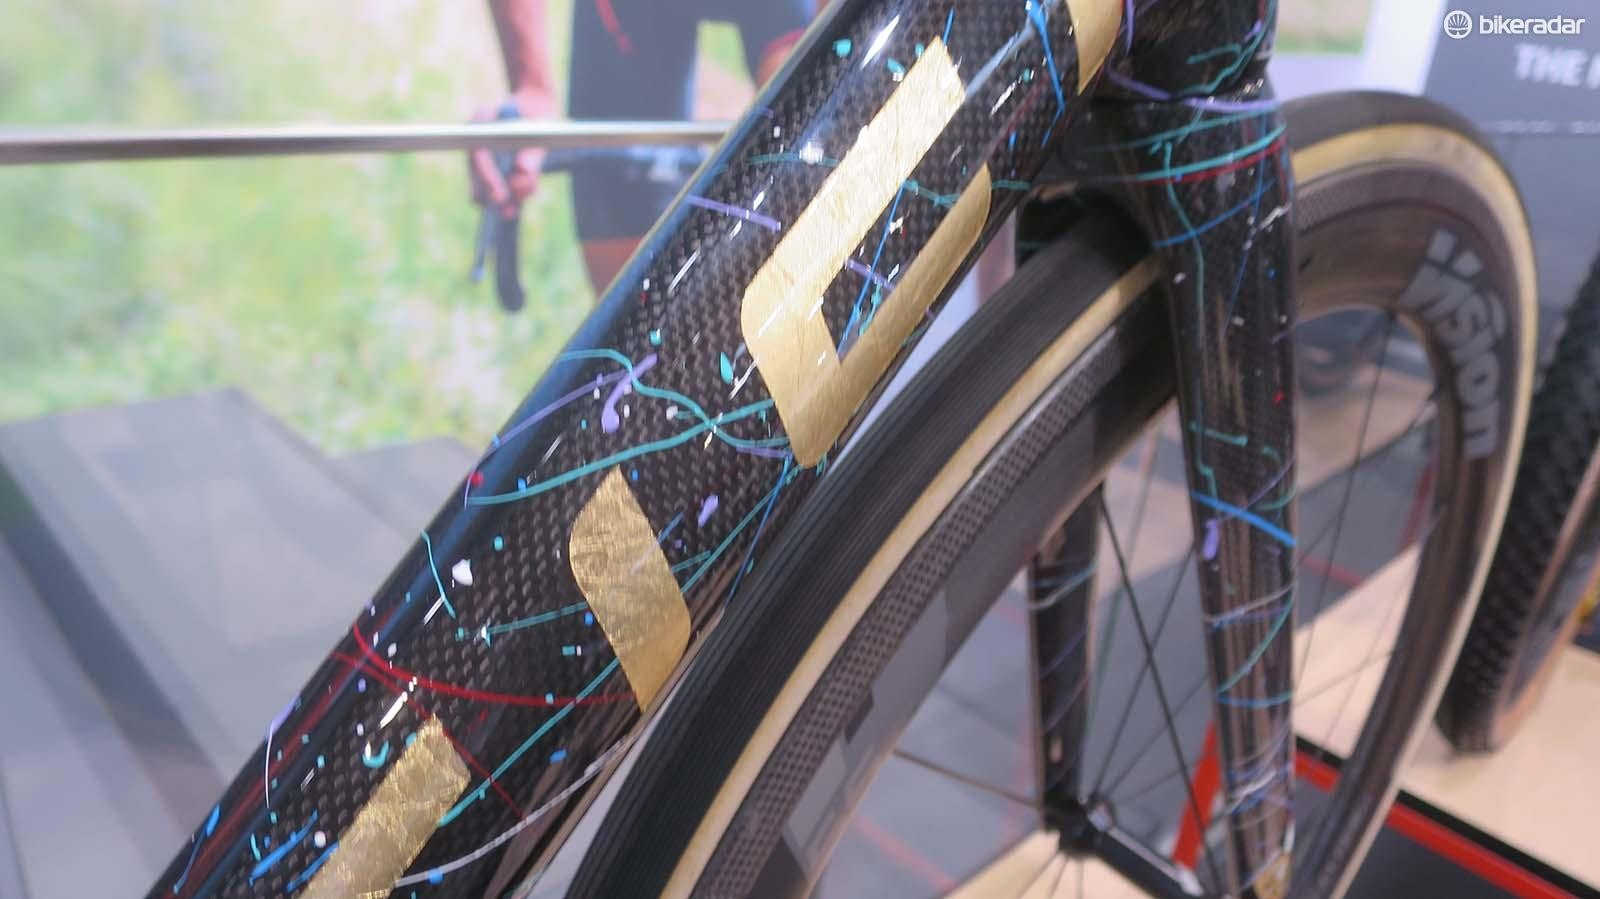 The splatter finishing reminds us of the best of Dario Pegoretti's bikes